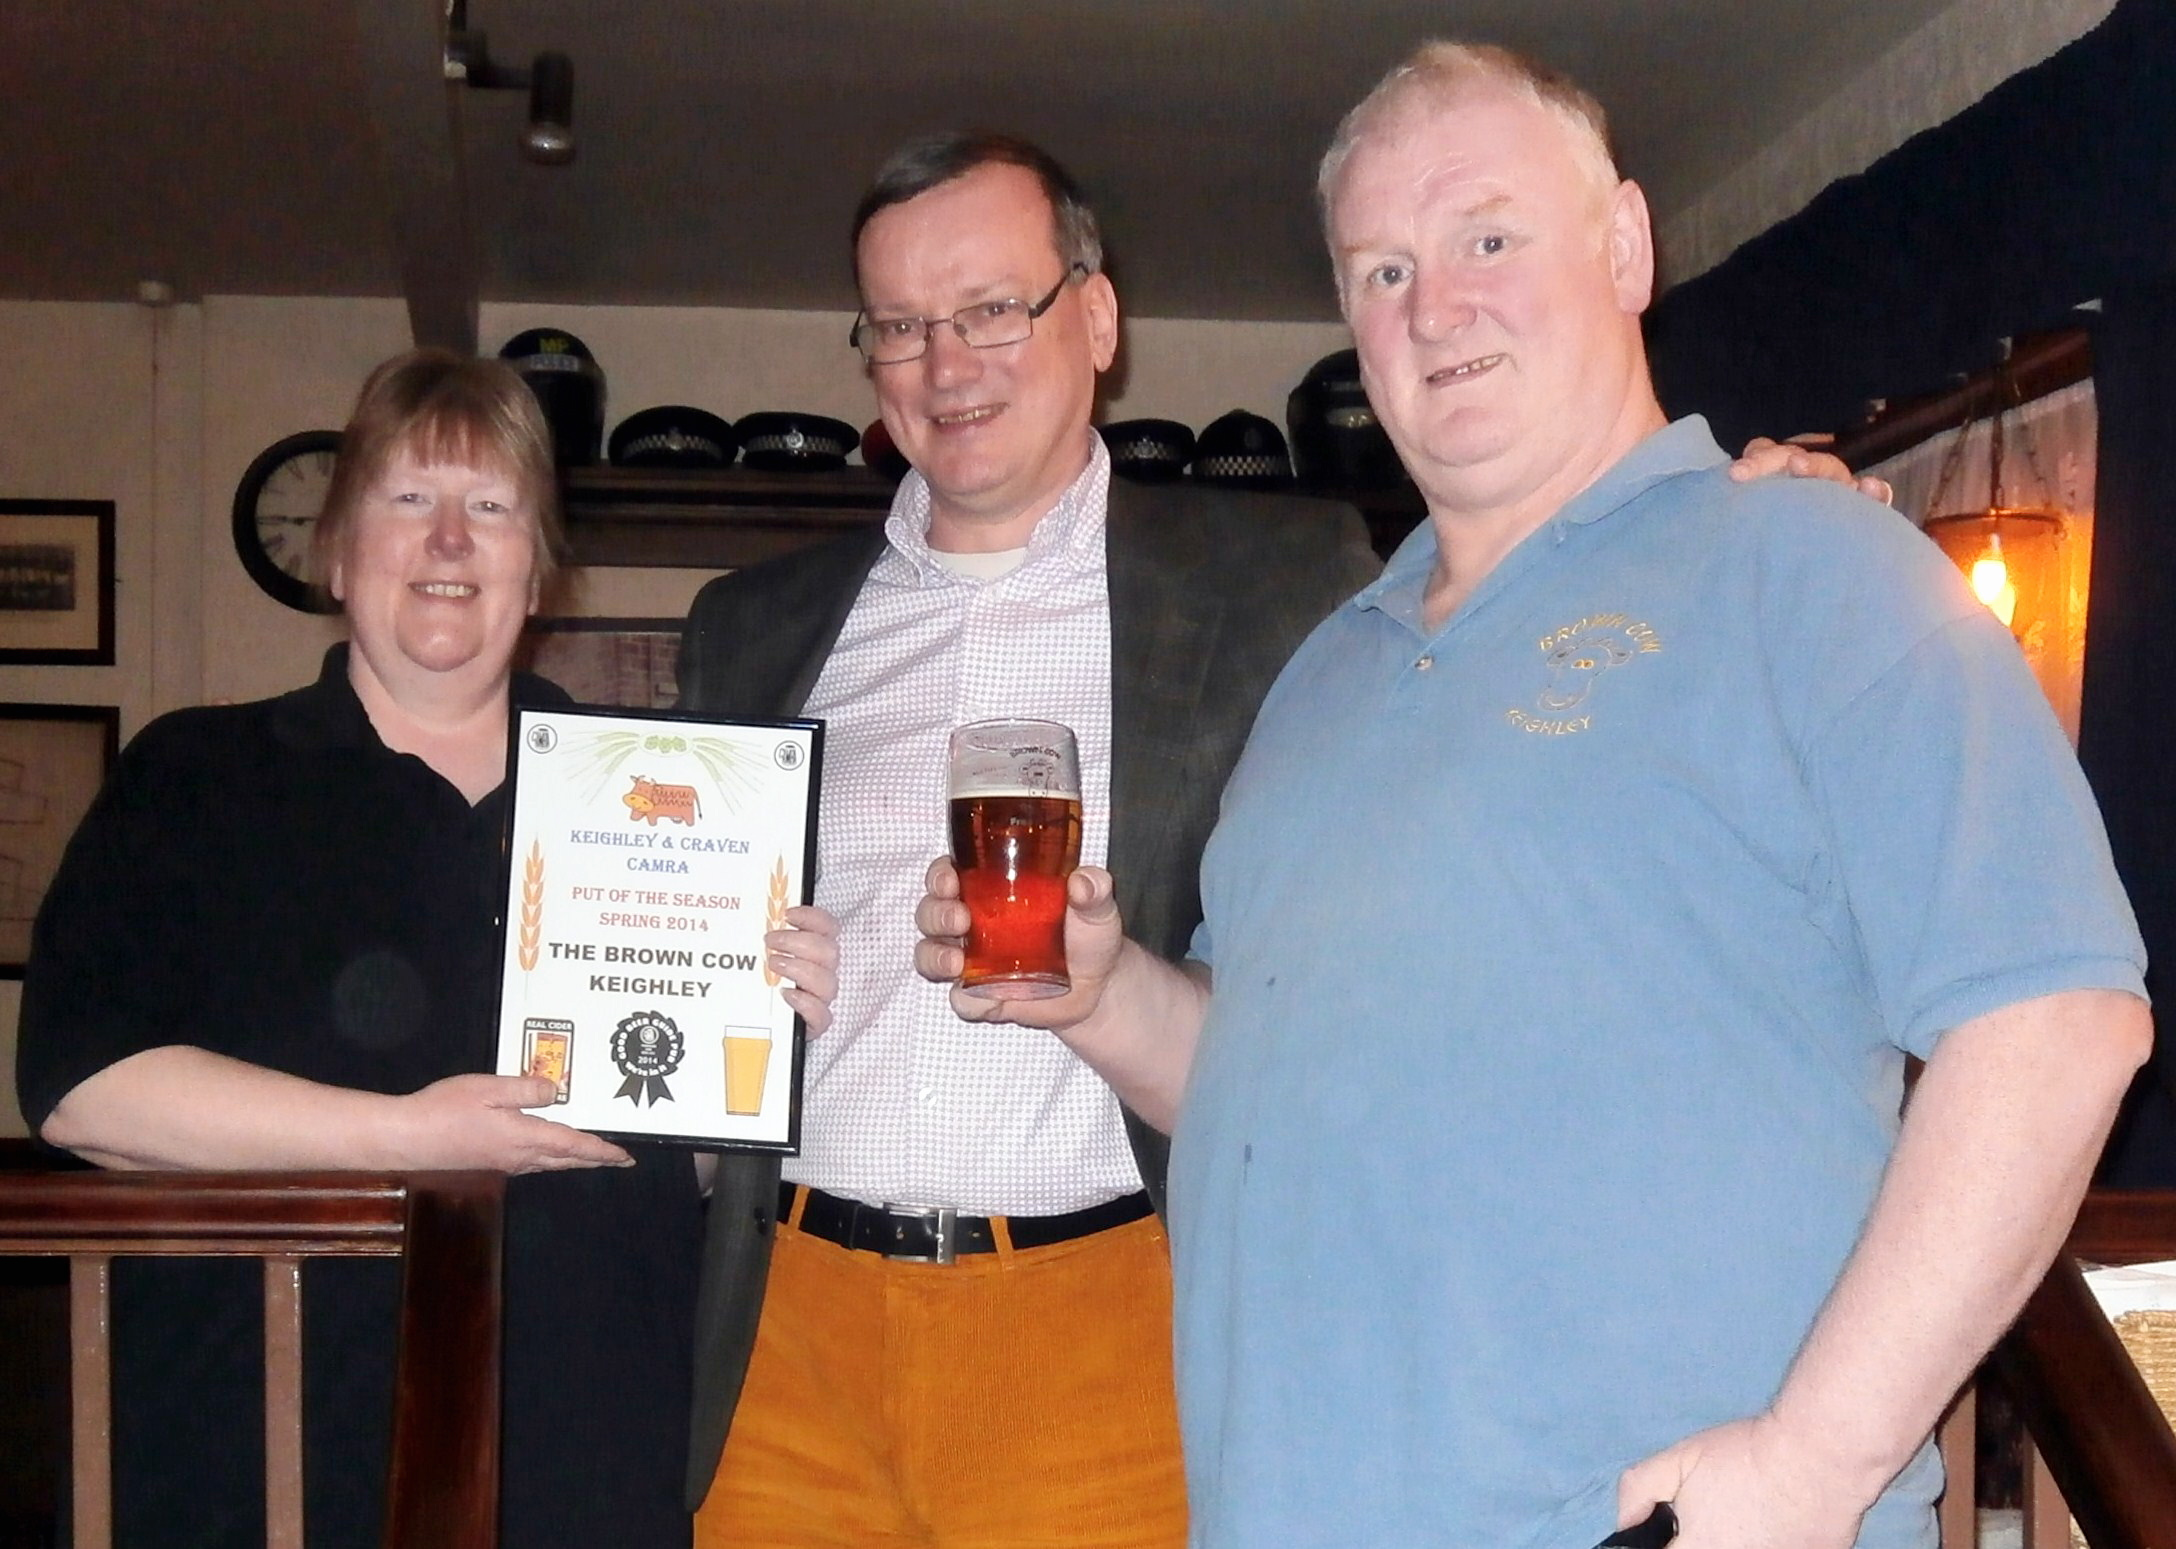 Tony Davies,  centre, of CAMRA, with Carol Taylor-Smith and Barry Smith at the Brown Cow